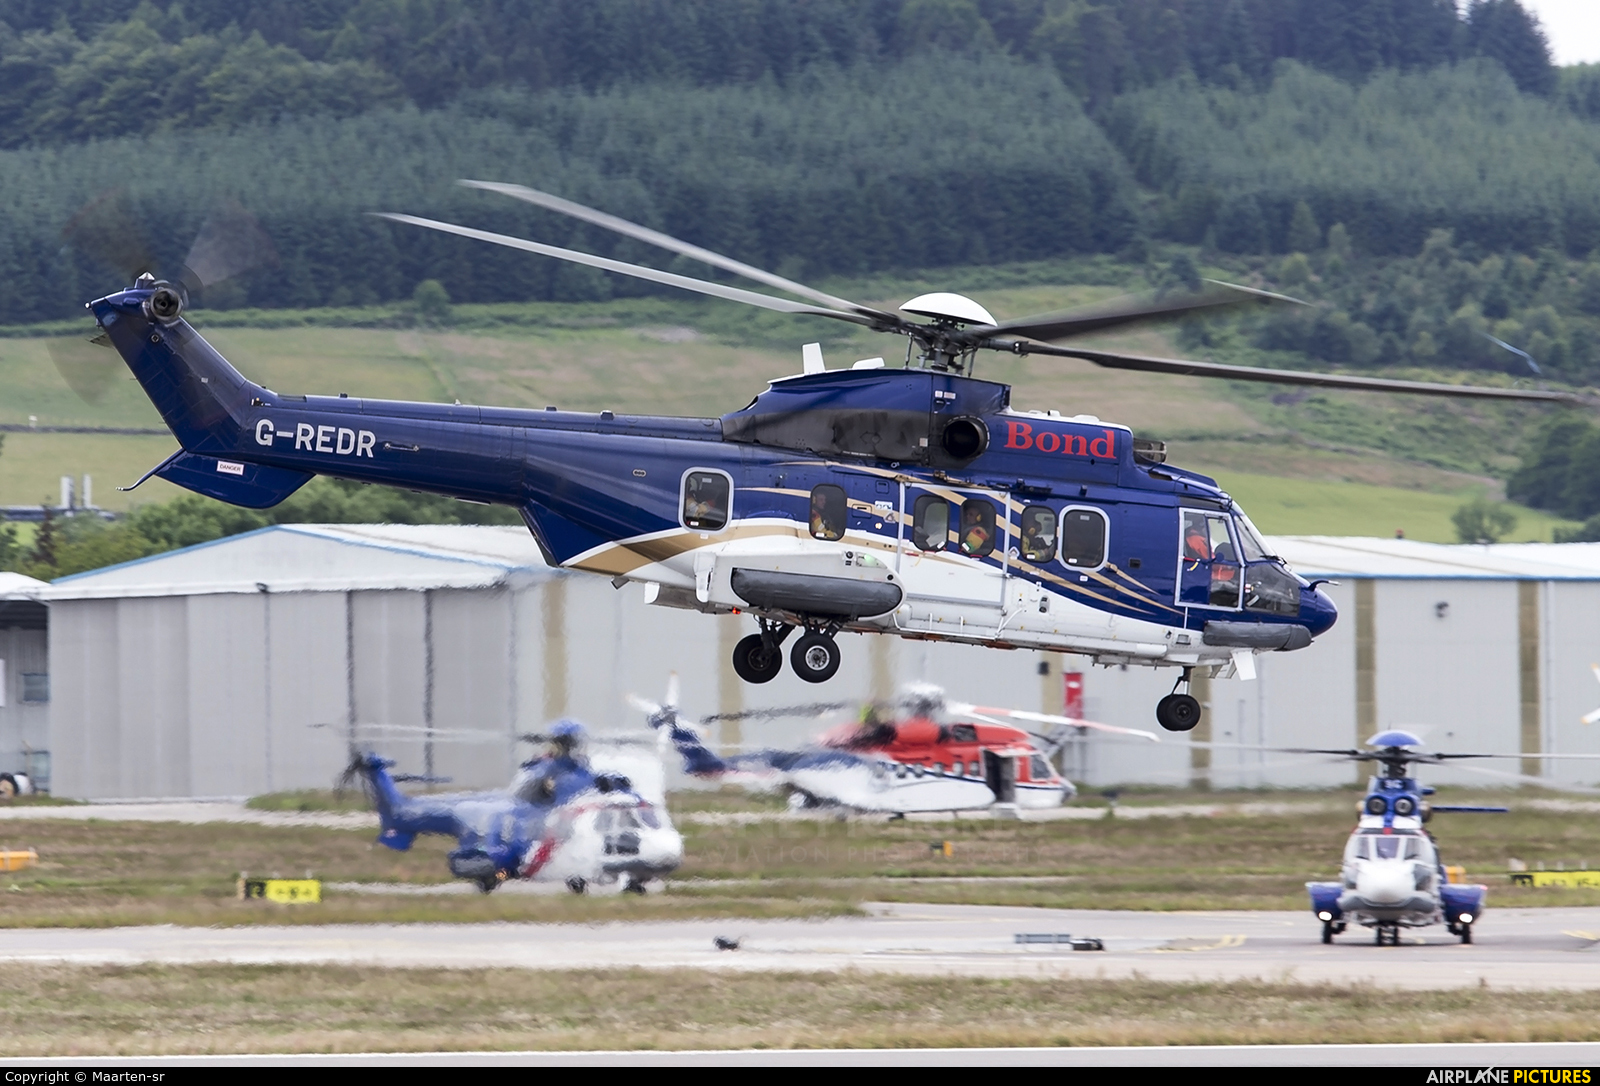 bond helicopters dyce with G Redr Bond Offshore Helicopters Eurocopter Ec225 Super Puma on G Redr Bond Offshore Helicopters Eurocopter Ec225 Super Puma besides Editors Briefing Fortnight Aerospace And Defense moreover Ec225lp 2Chelicopter furthermore 8118627 together with Bond 20Helicopters.